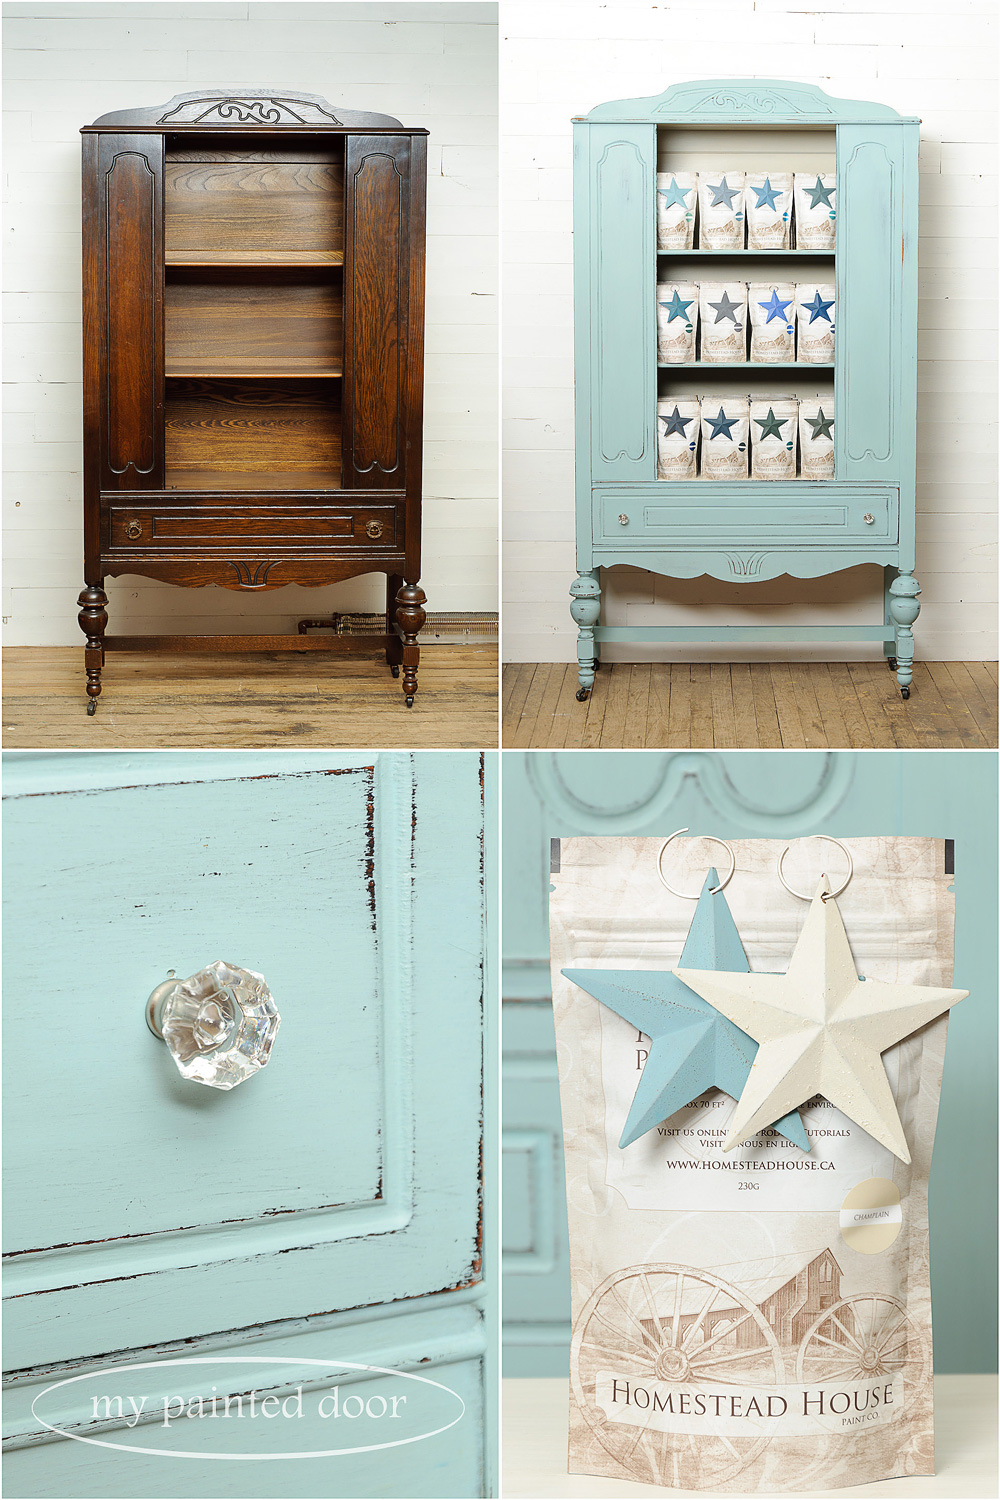 Before and after photos - Hutch painted in Homestead House Milk Paint in Loyalist and Champlain.